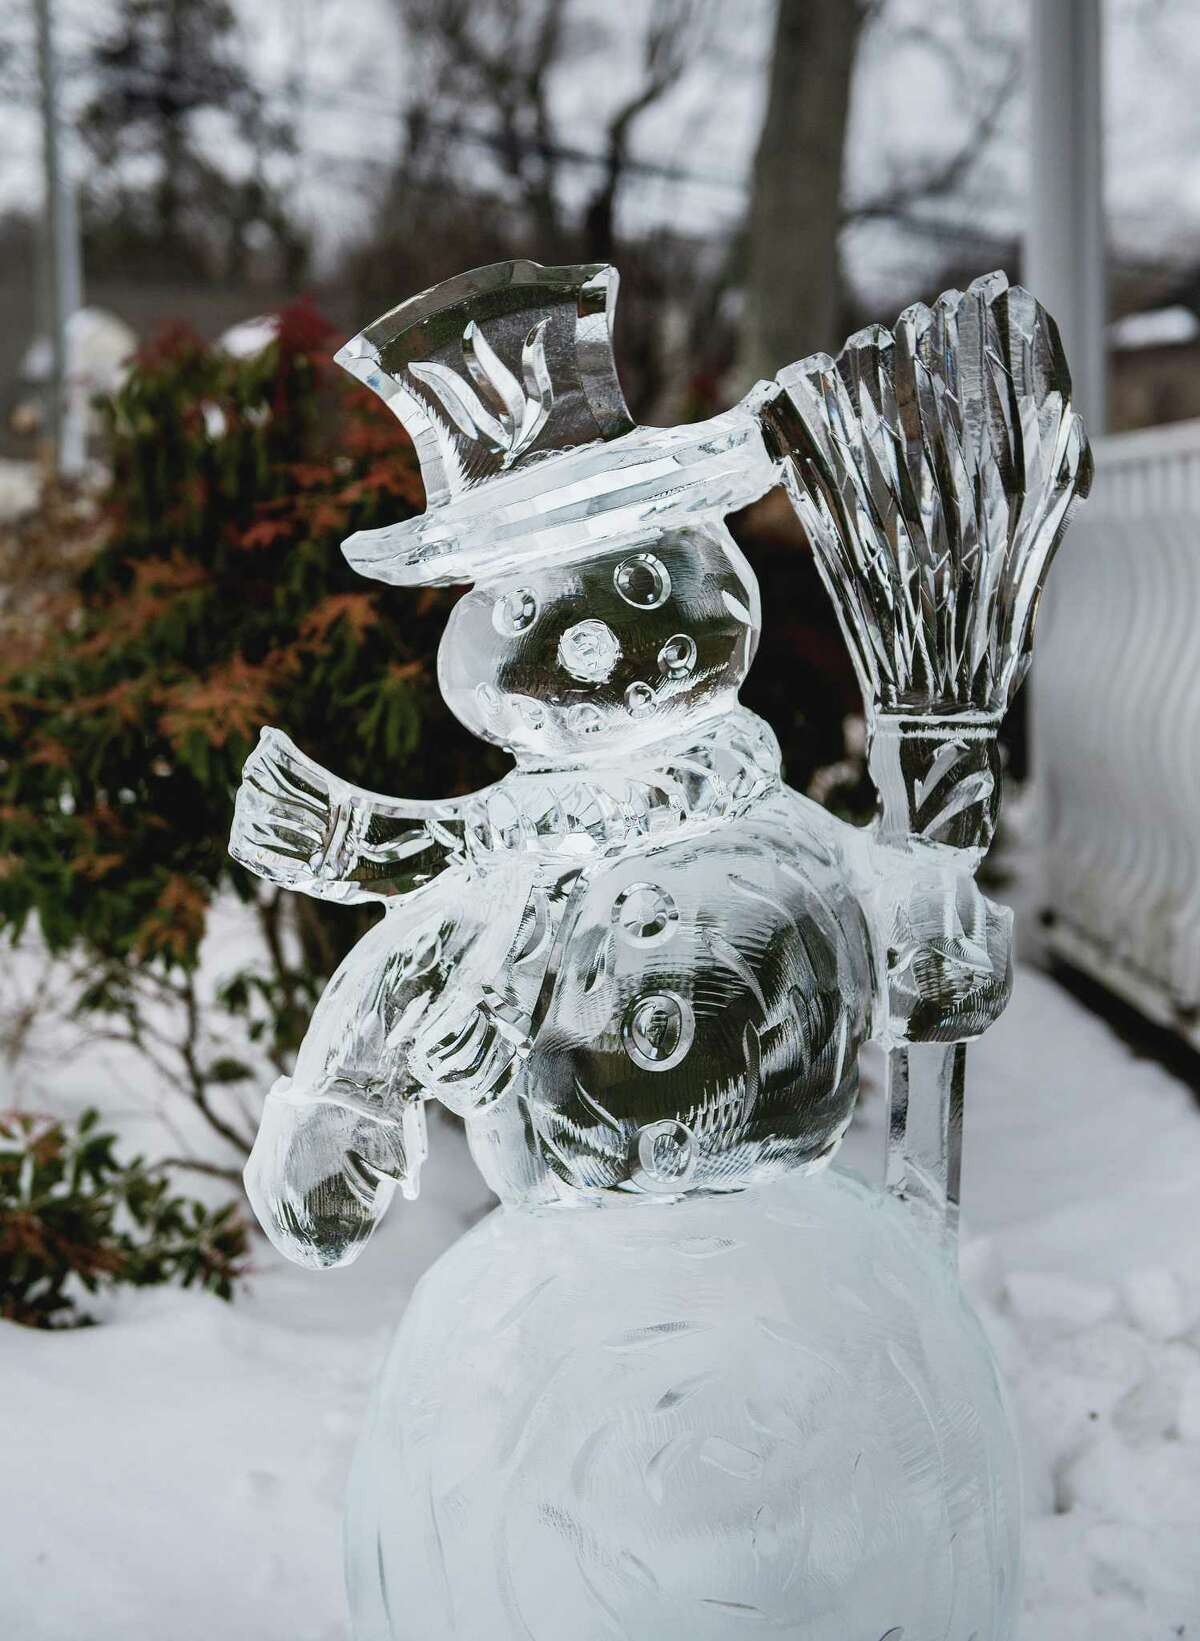 Ice sculptures were on display on the Town Green at the Chamber of Commerce's Winter Fest on Saturday, Feb. 13